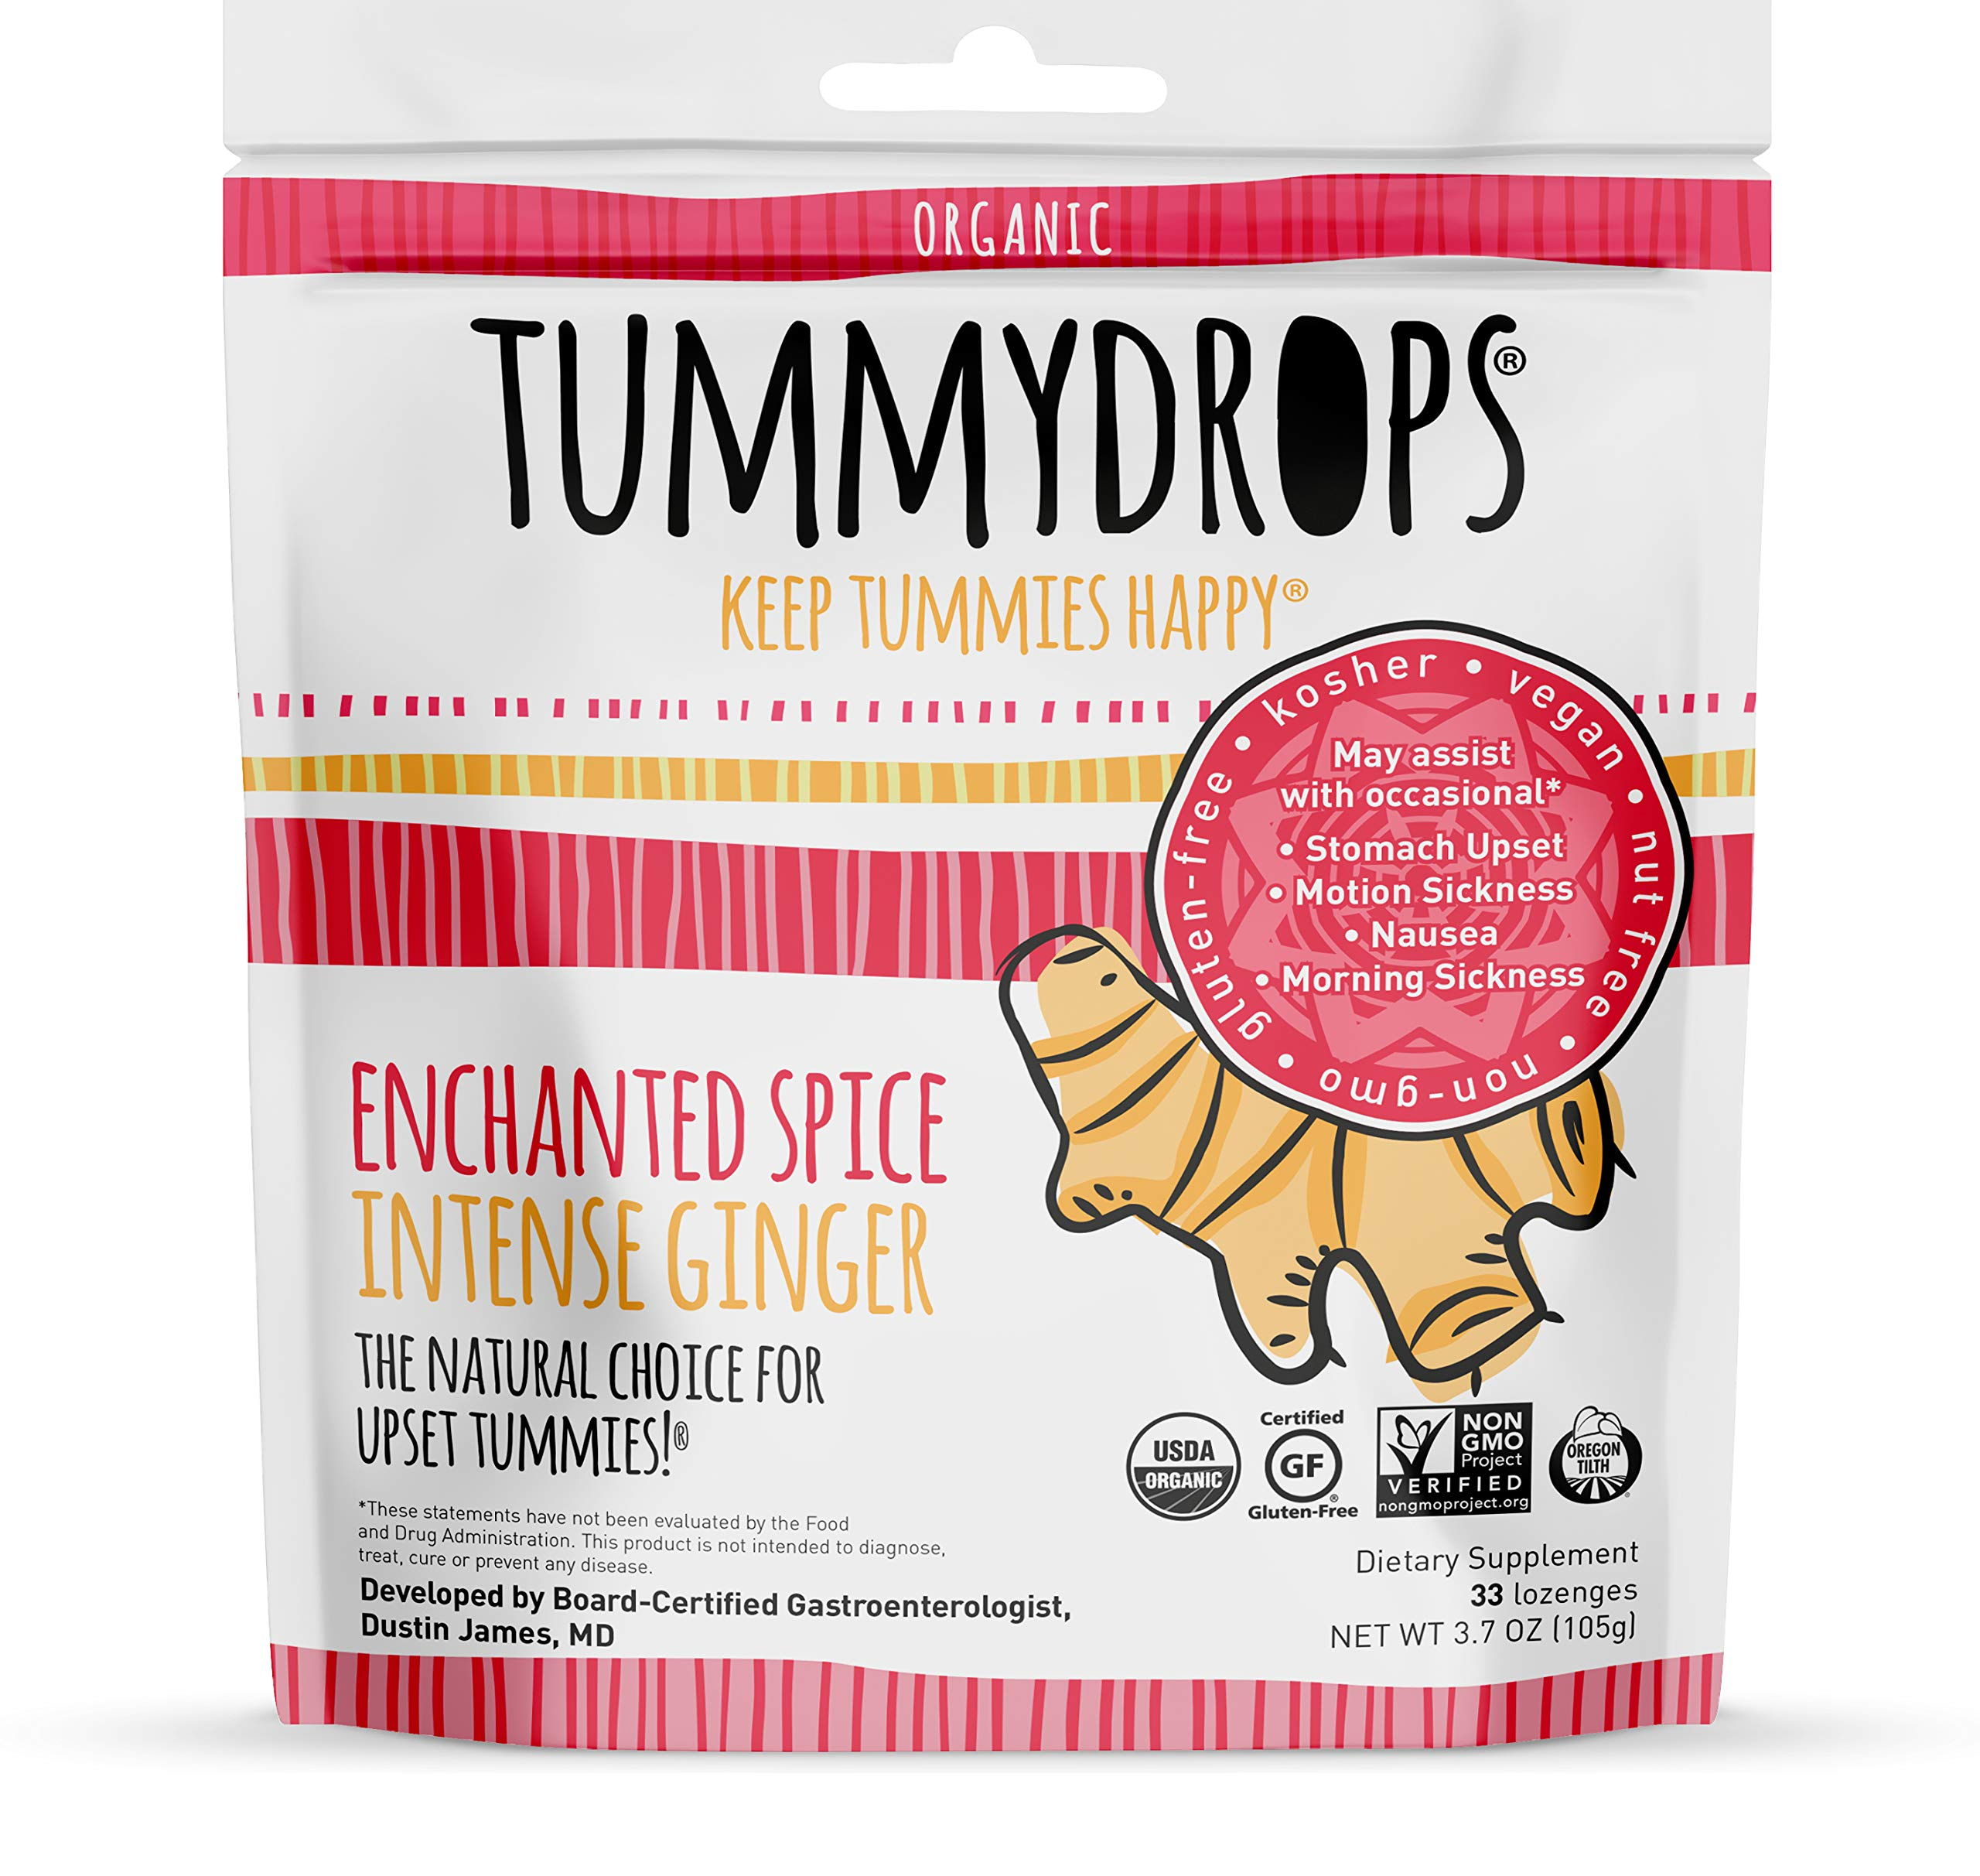 USDA Organic Enchanted Spice Intense Ginger Tummydrops (Resealable Bag with 33 Individually Wrapped Drops) Certified by Oregon Tilth Organic, GFCO Gluten-free, Non-GMO Project, and Kof-K Kosher